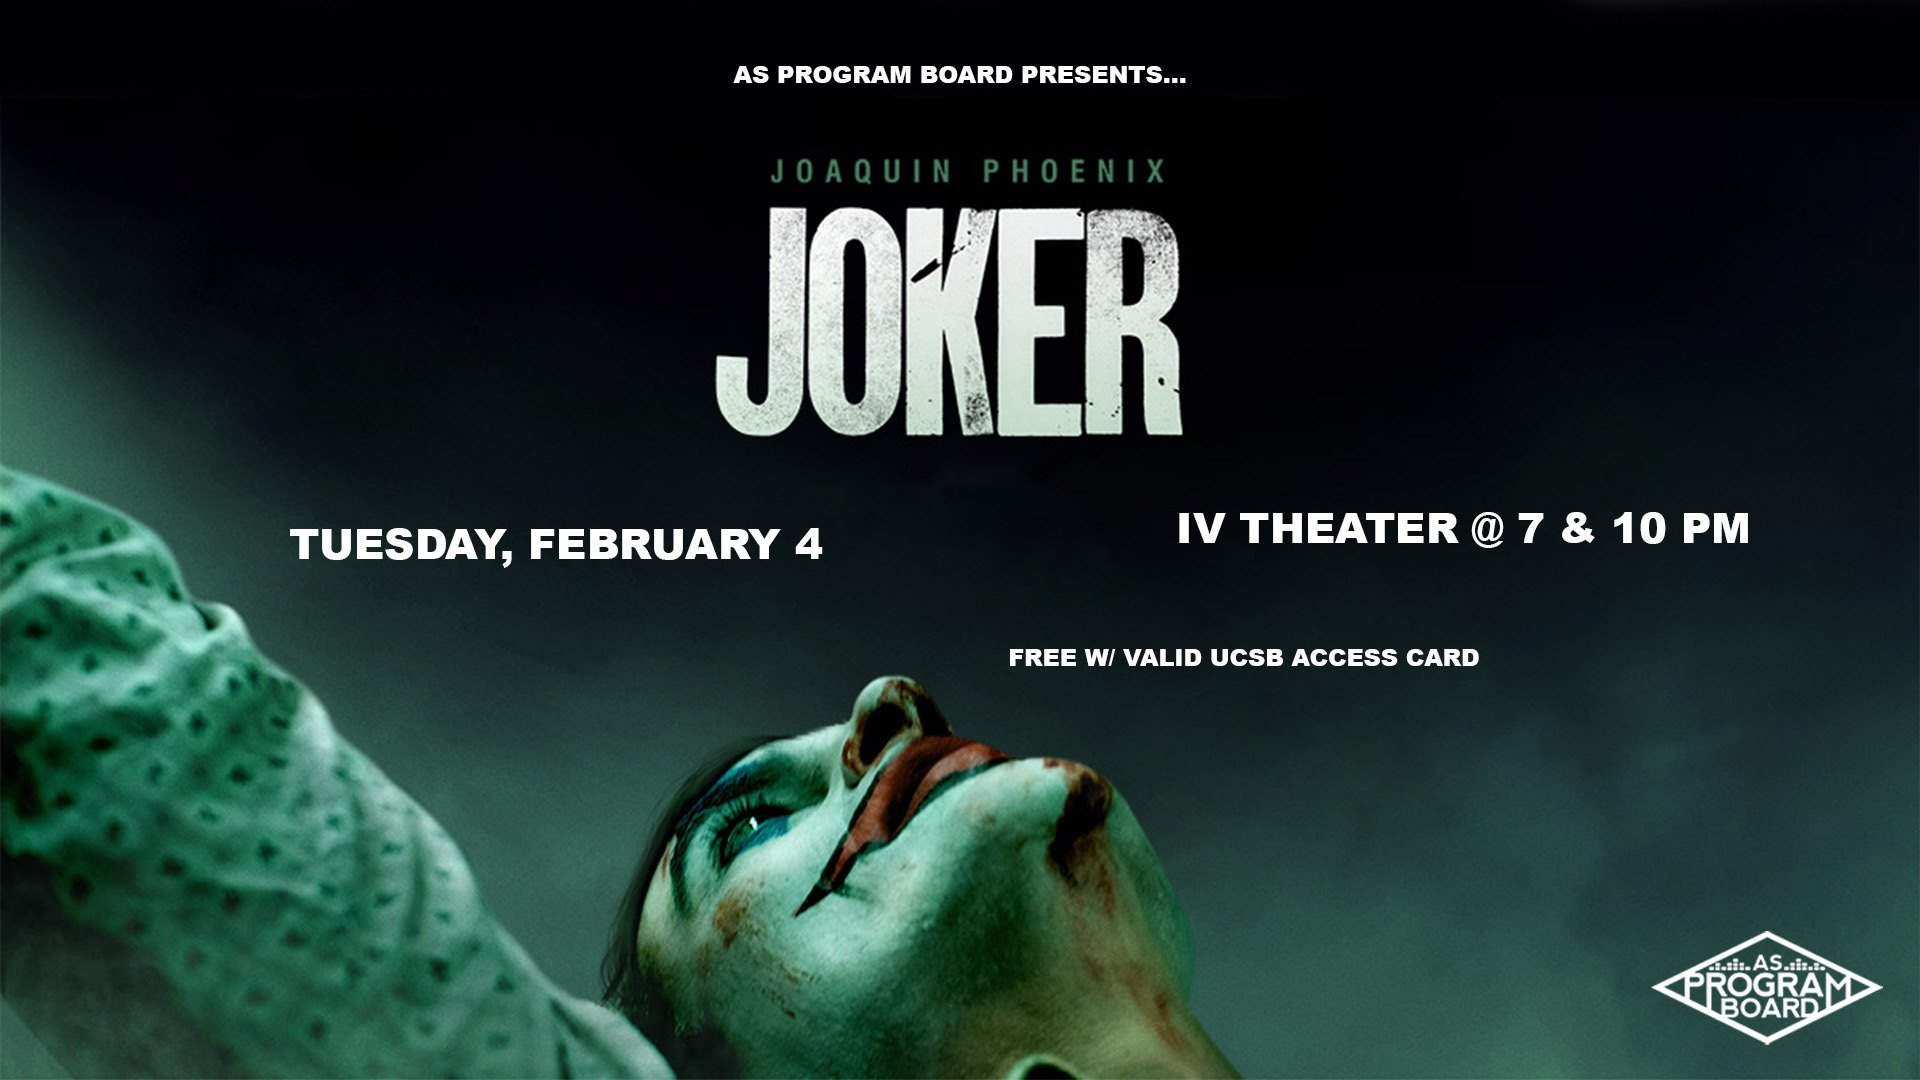 Free Film Tuesday at I.V. Theater: Joker (2/4)